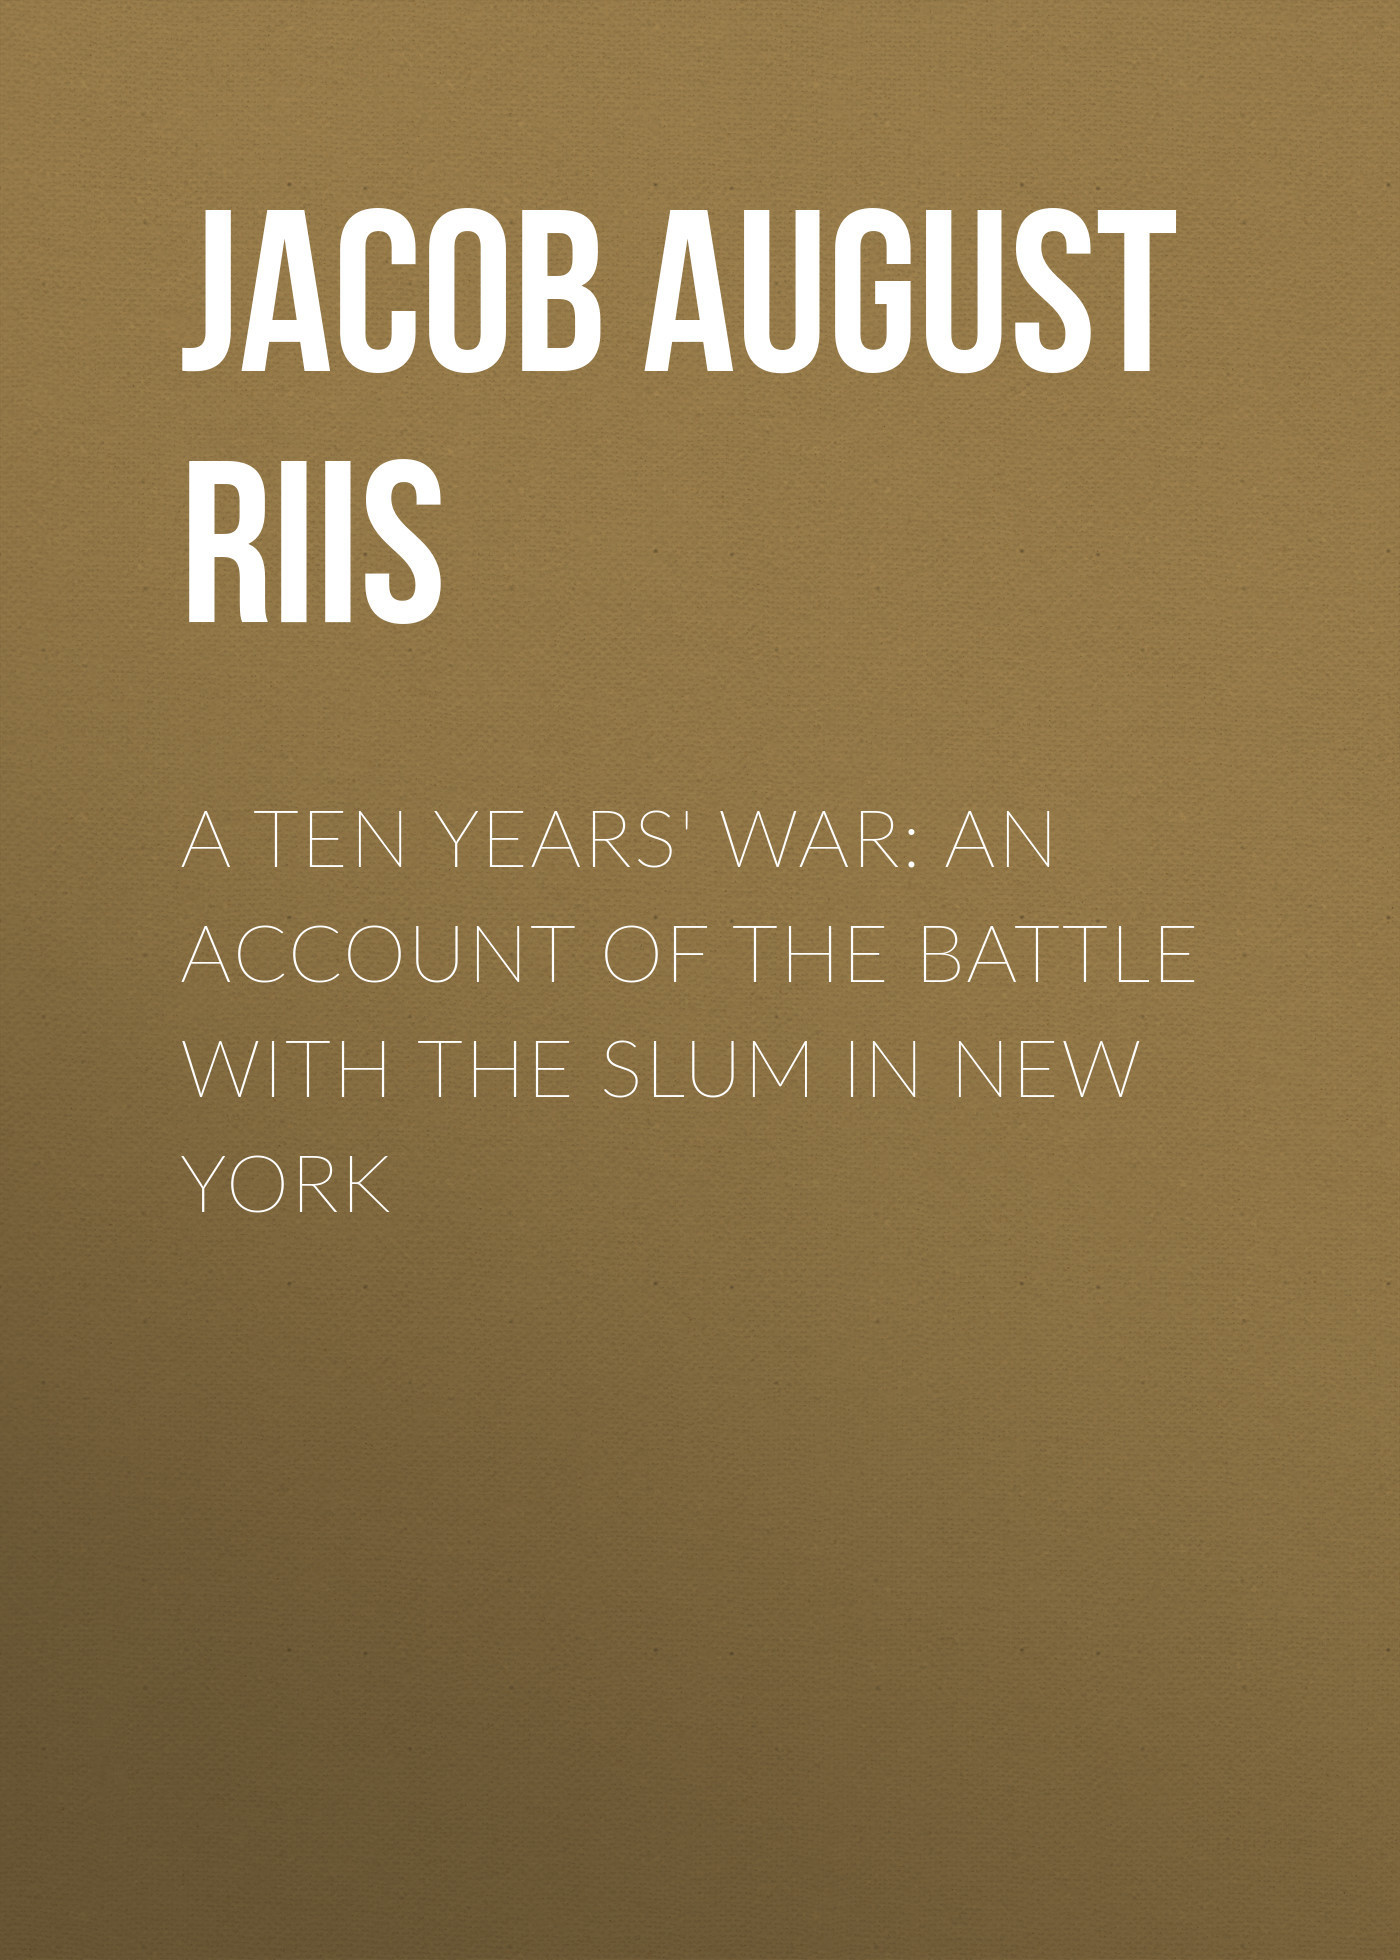 Jacob August Riis A Ten Years' War: An Account of the Battle with the Slum in New York ten years after ten years after undead expanded 2 lp 180 gr